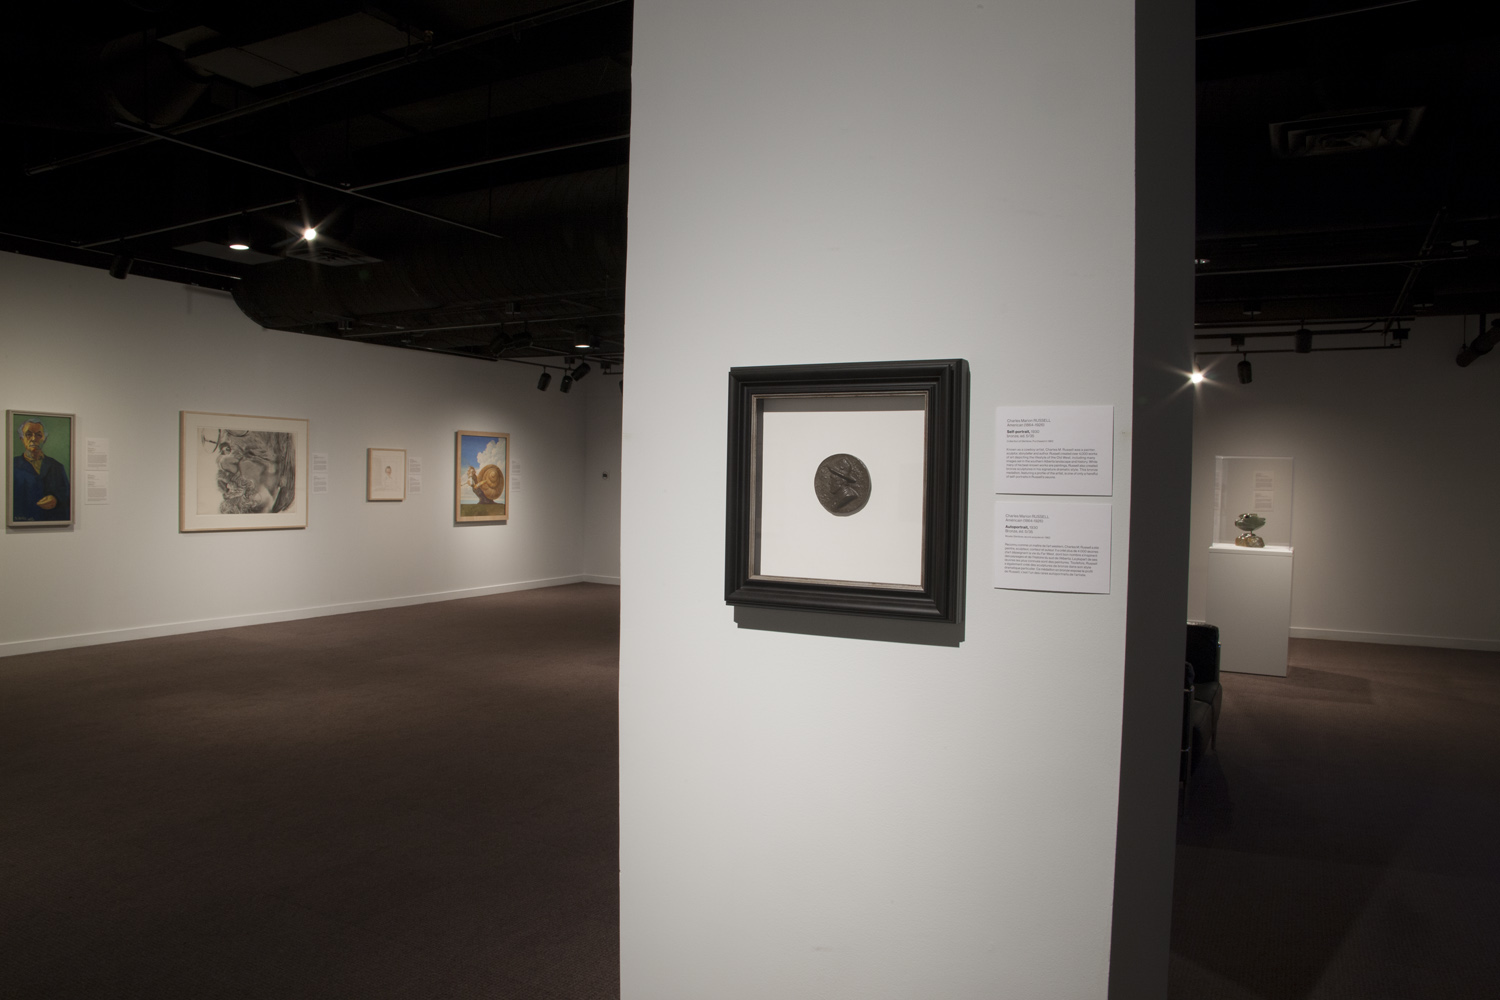 A colour photograph of a dimly lit room with various art pieces hung on the walls.